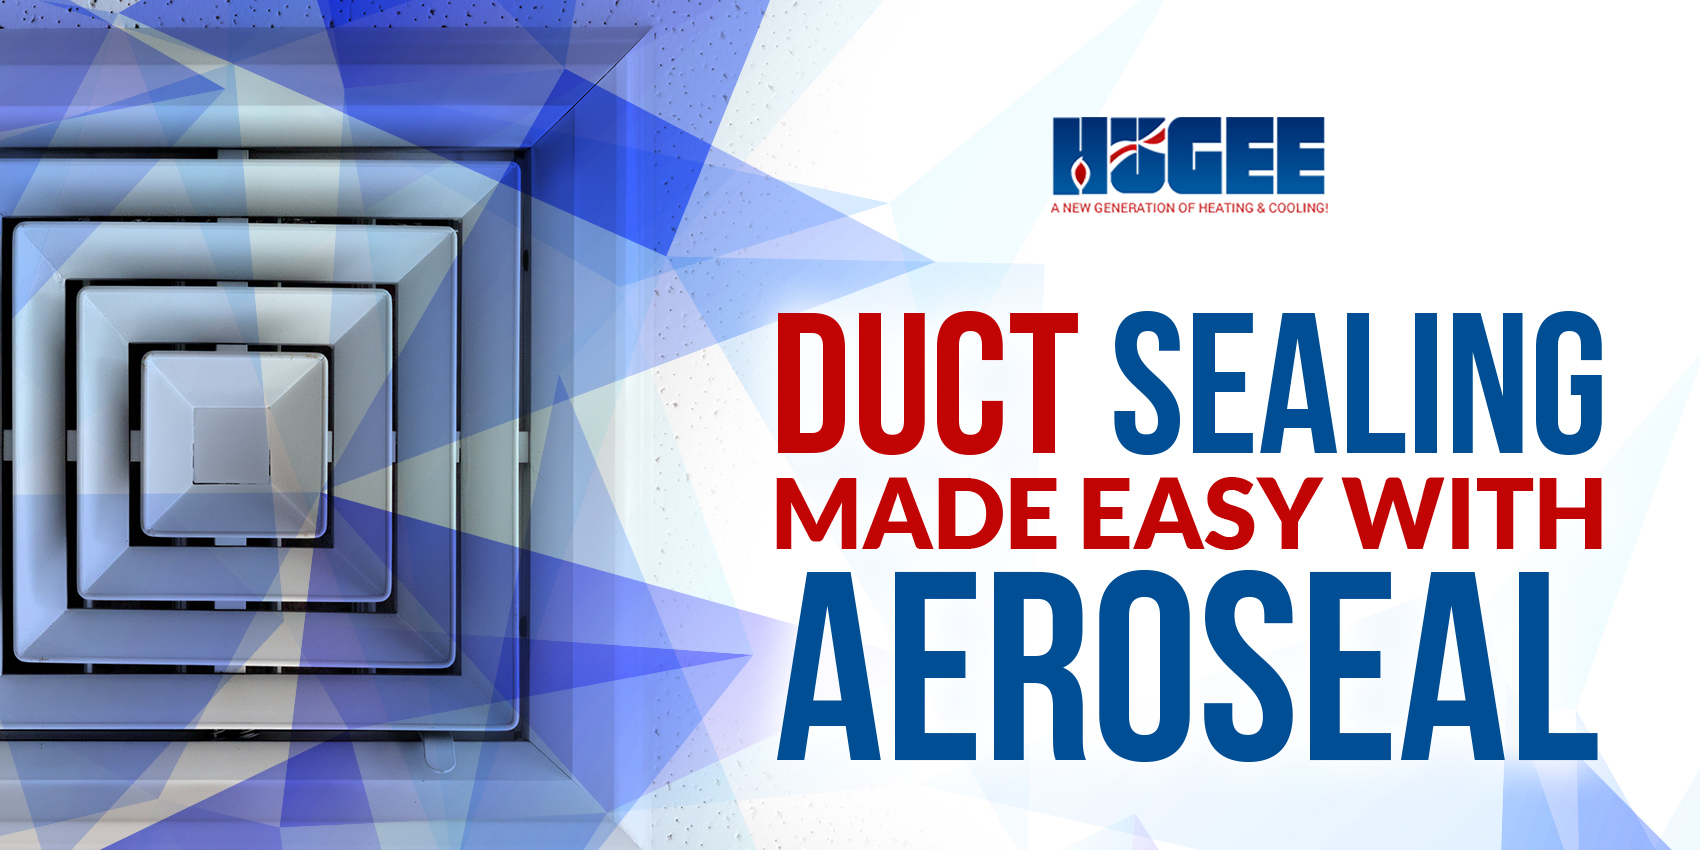 Duct Sealing Made Easy With Aeroseal!